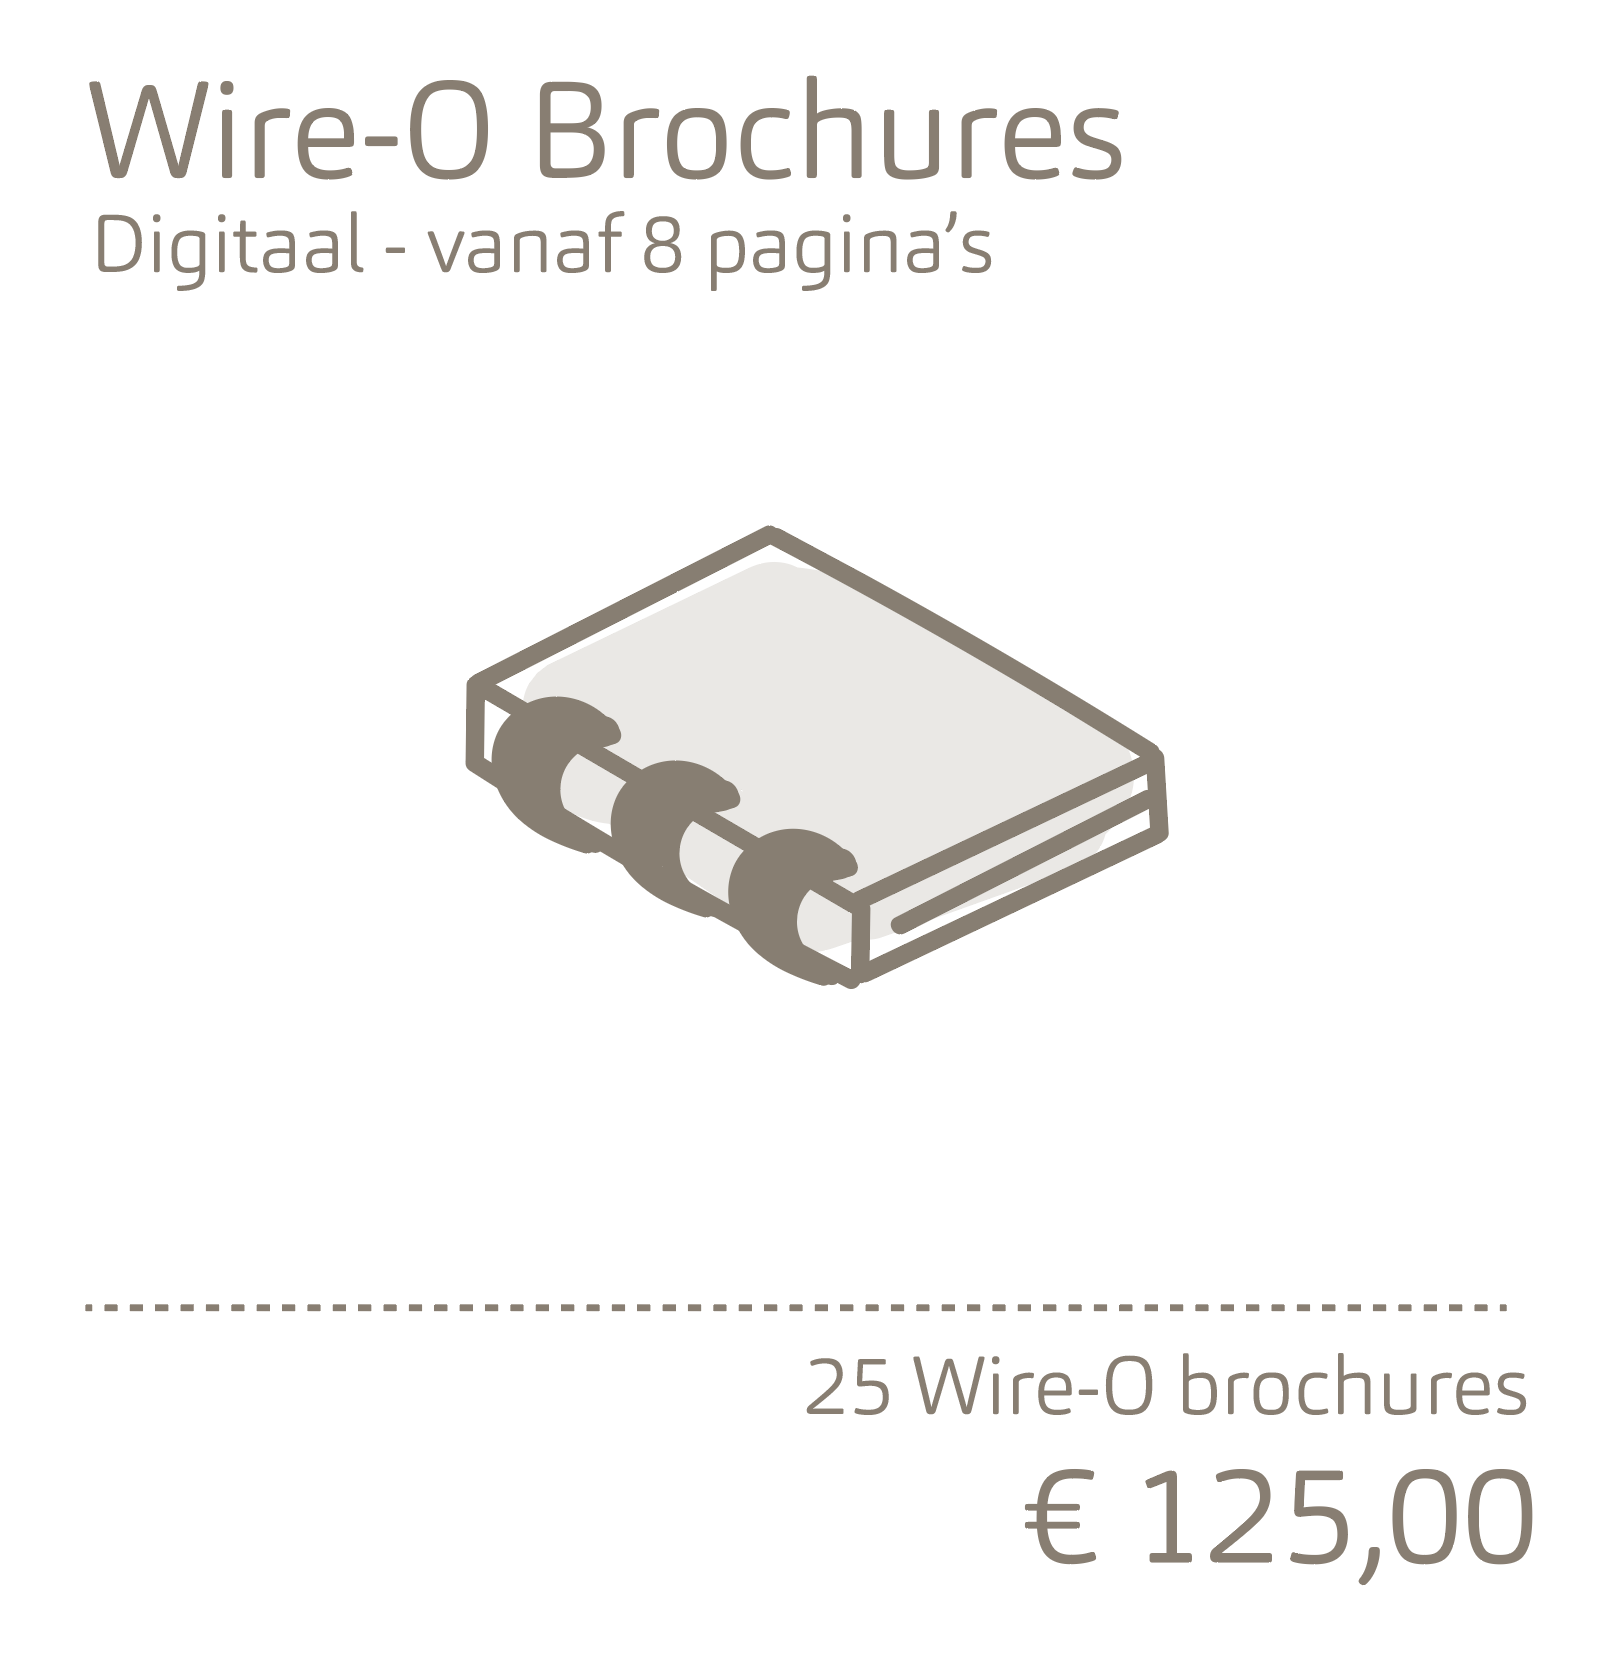 Wire-O brochures